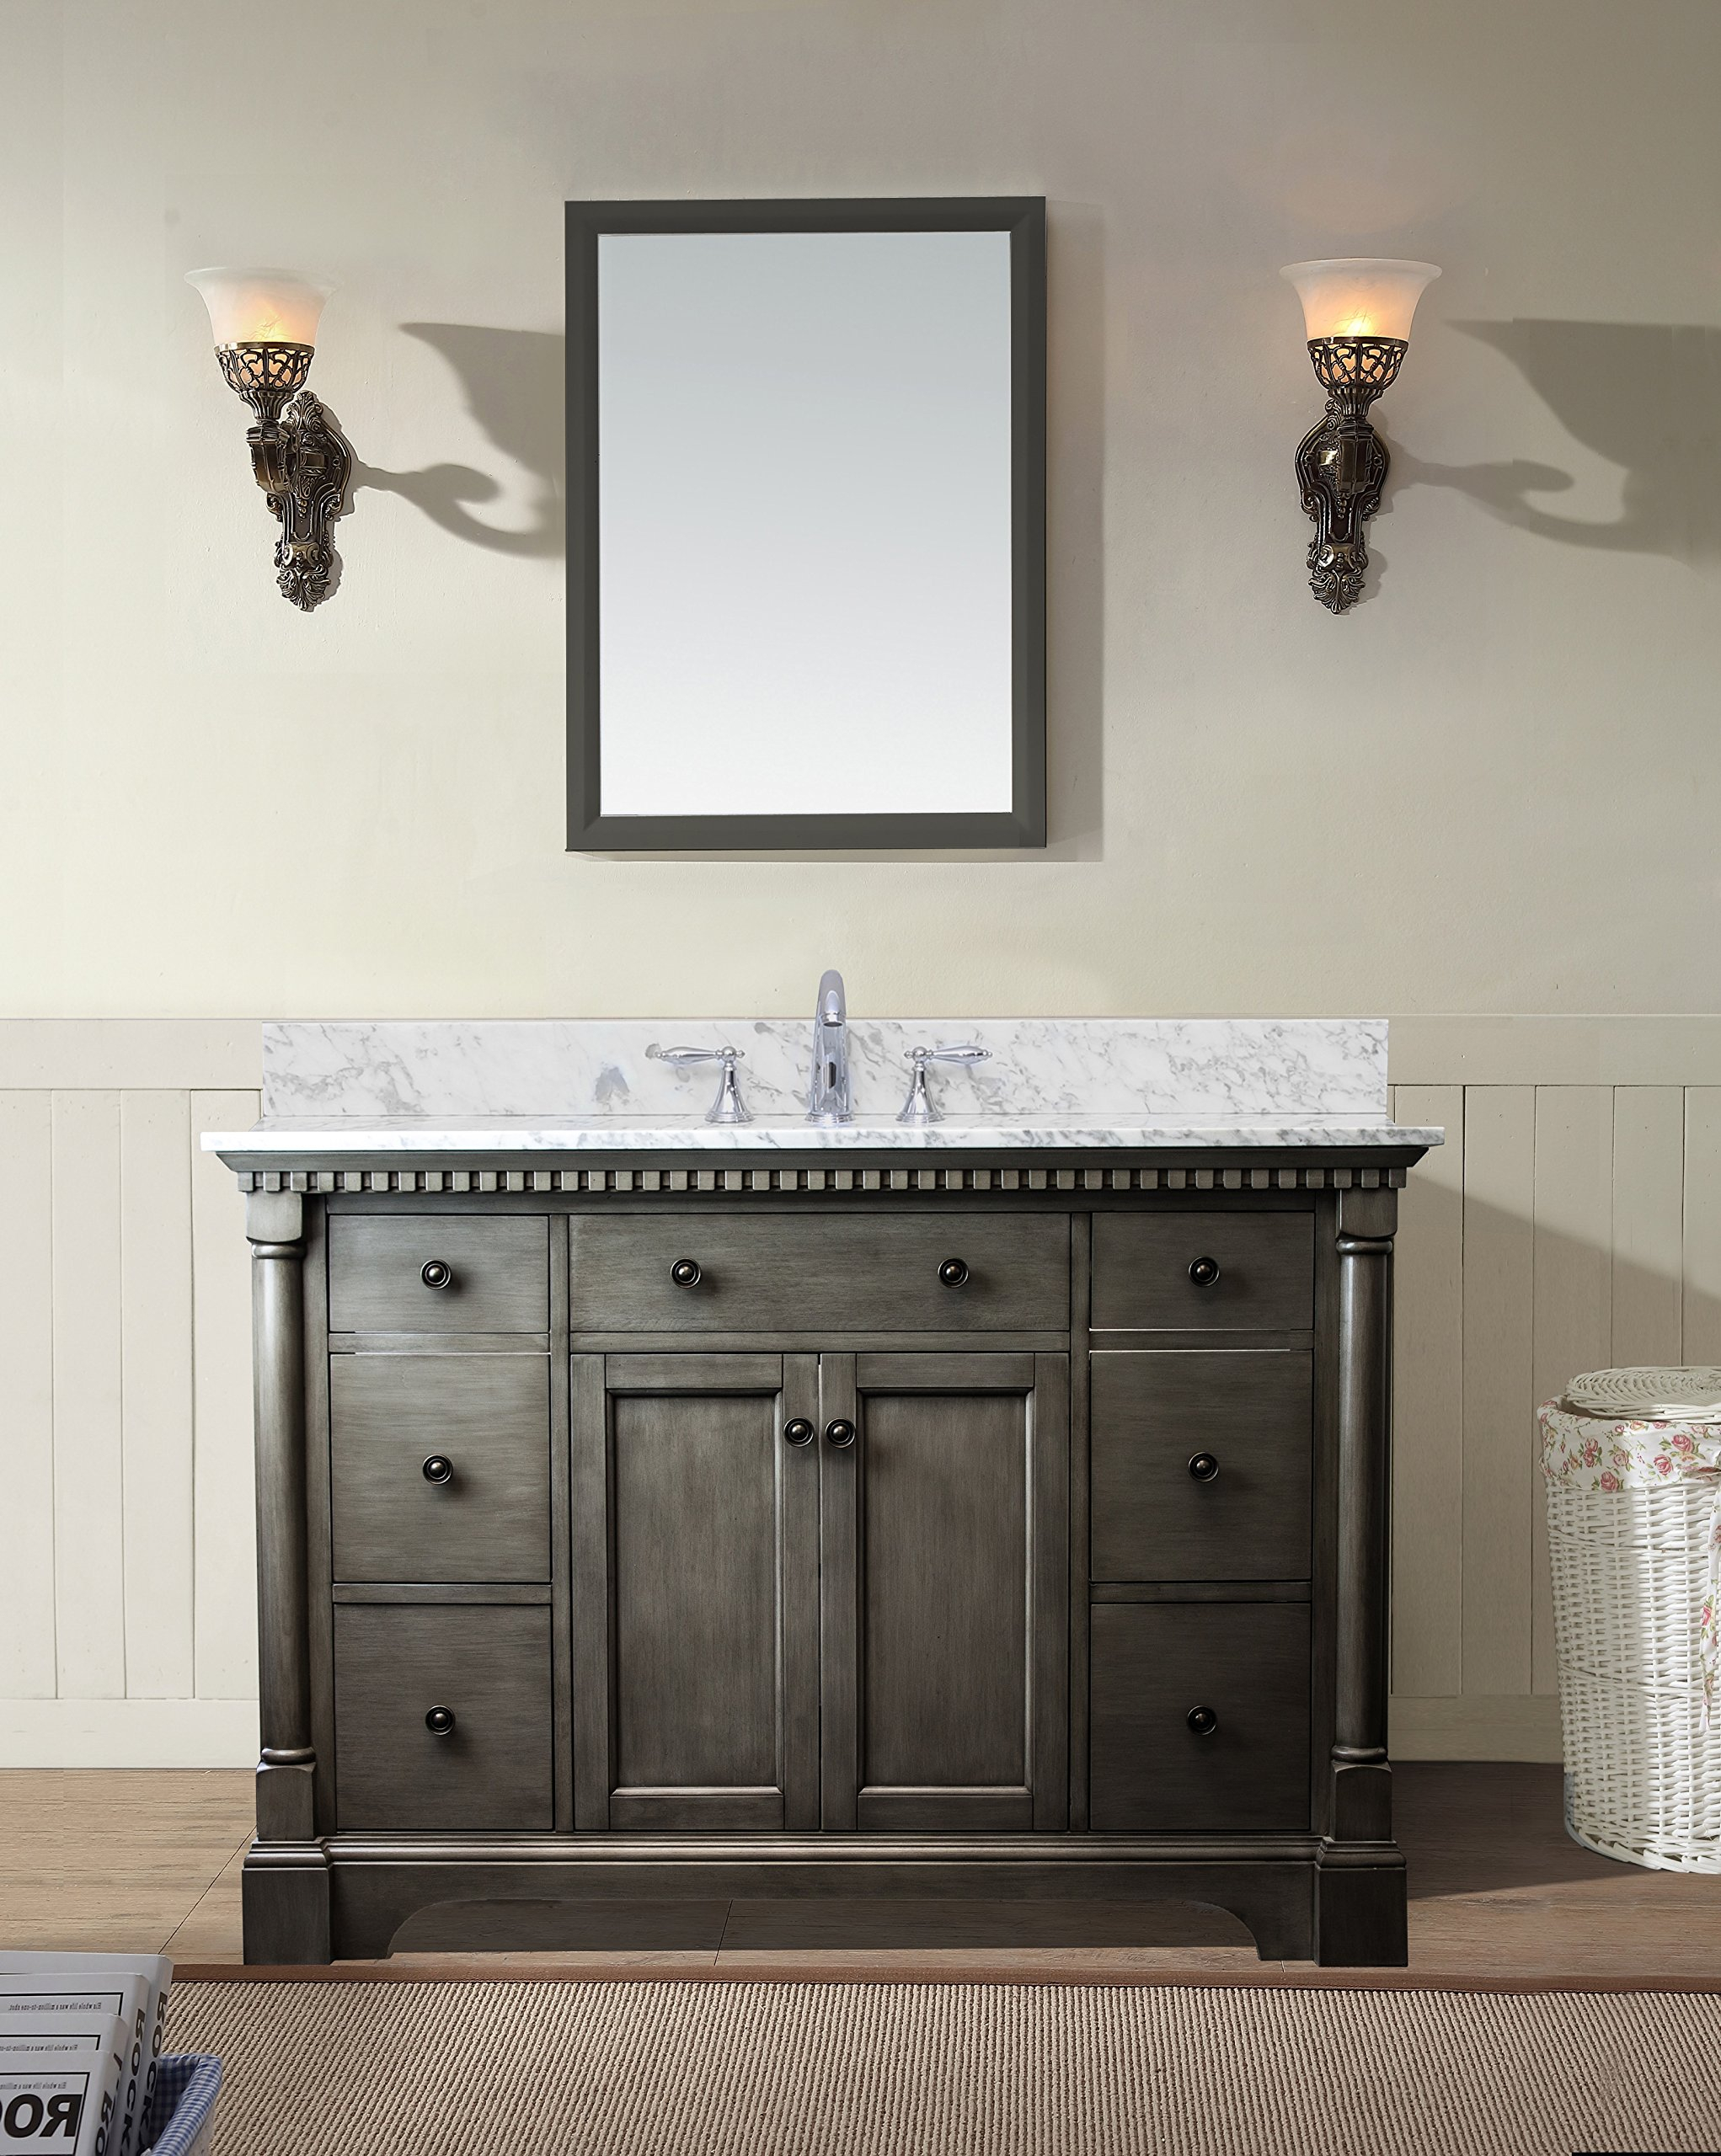 "Glamorous Bathroom Cabinets San Antonio Inspiration Stella 49"" Bathroom Vanity with Best of Bathroom Vanities San Antonio"